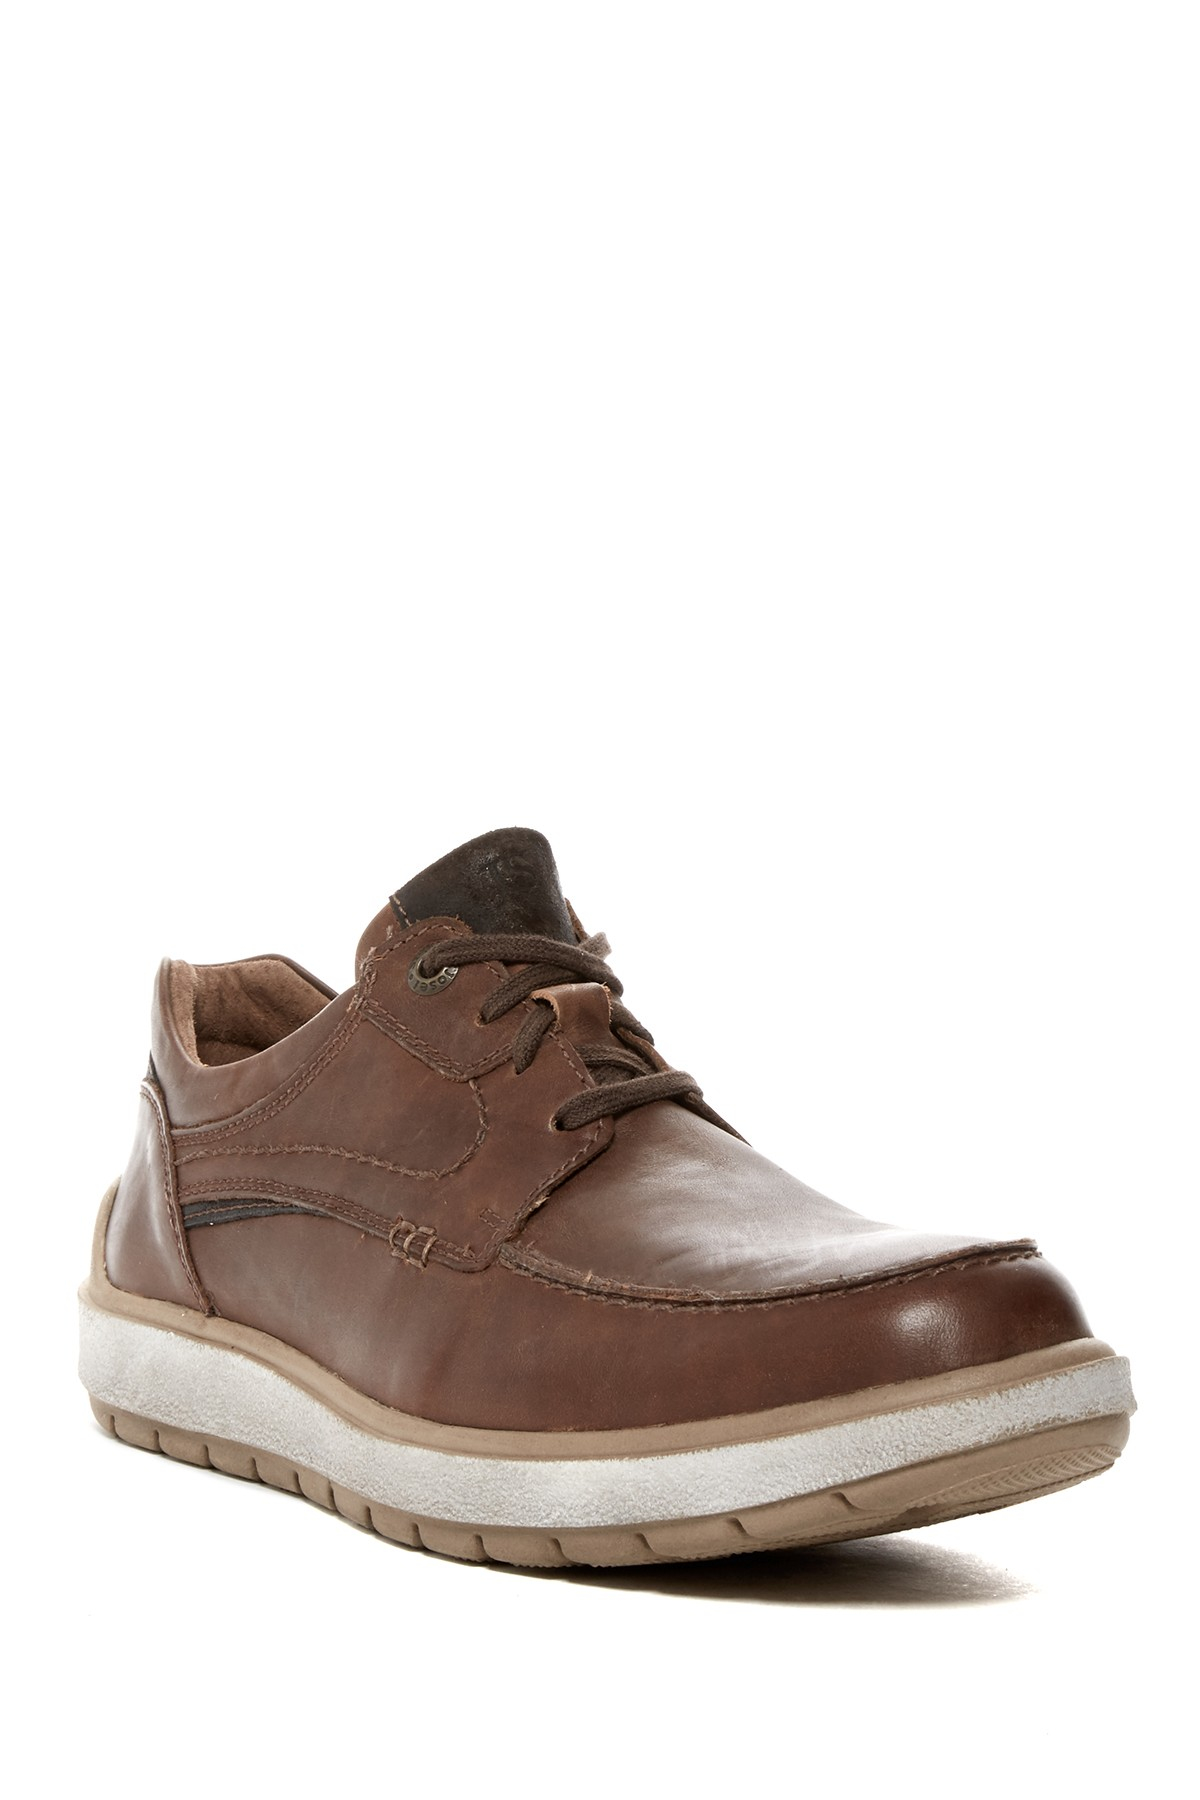 Josef Seibel Shoes True To Size